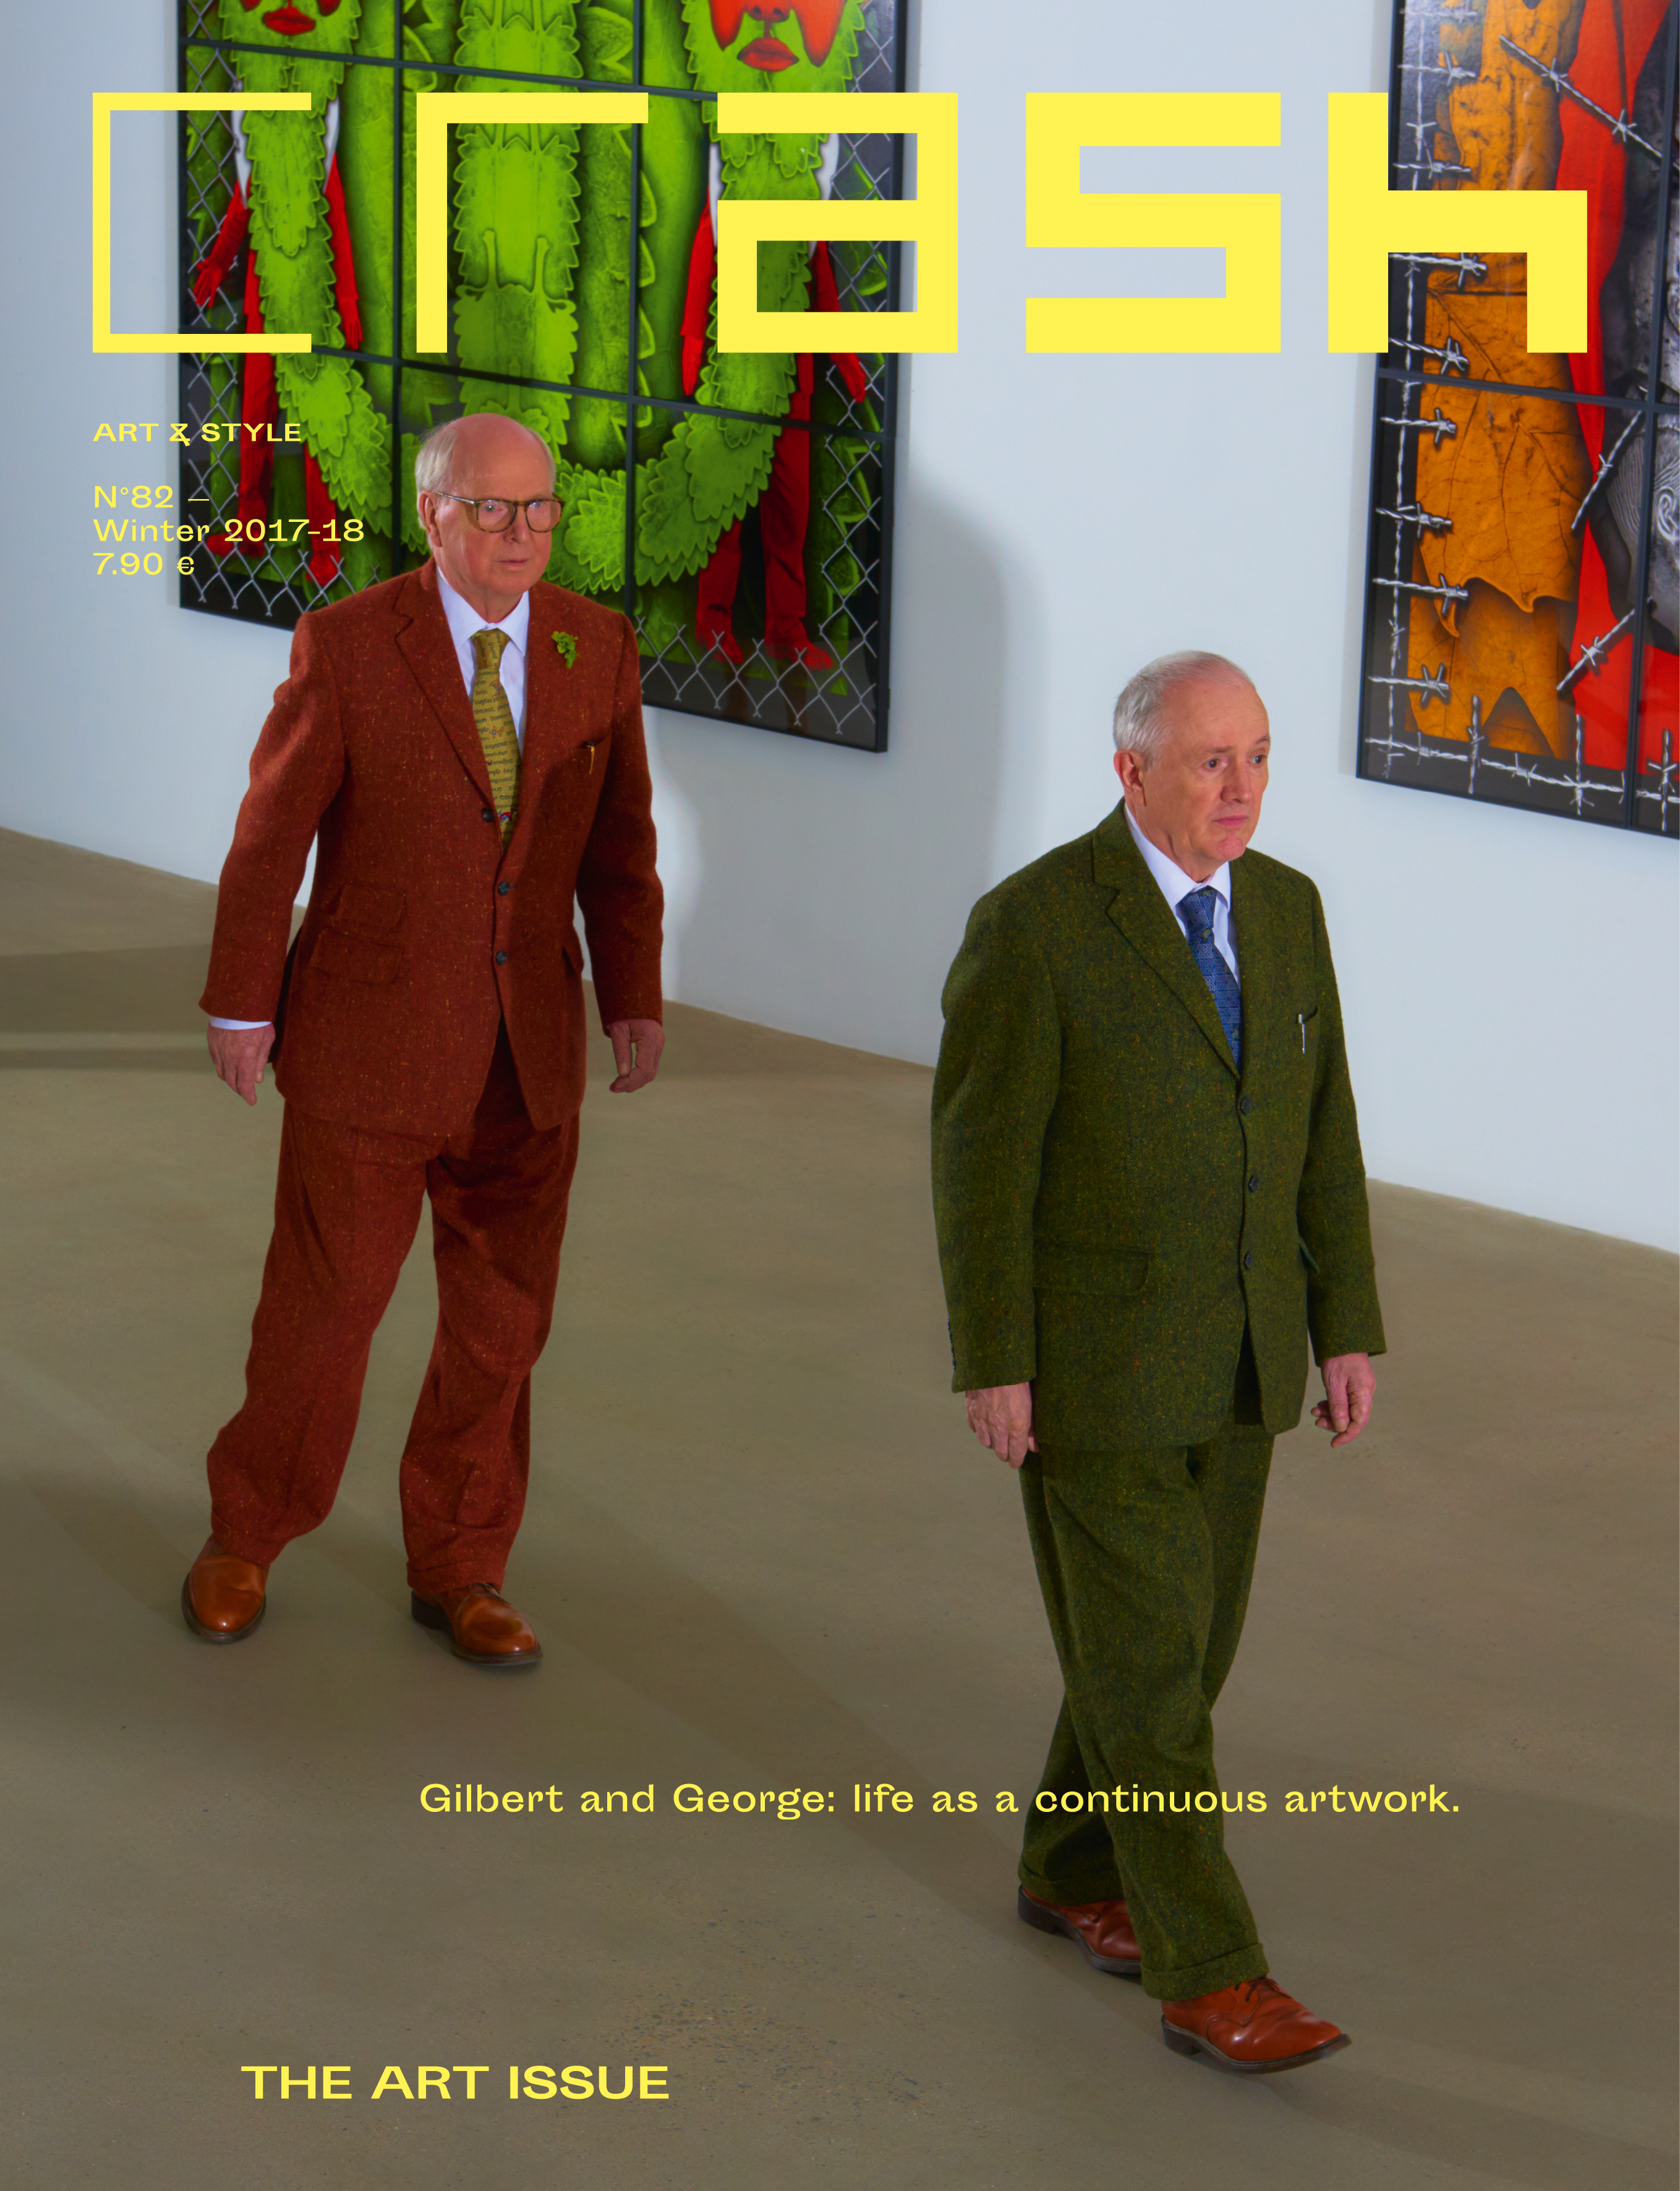 DISCOVER THE ART ISSUE 82 WITH GILBERT & GEORGE AND OKSANA SHACHKO